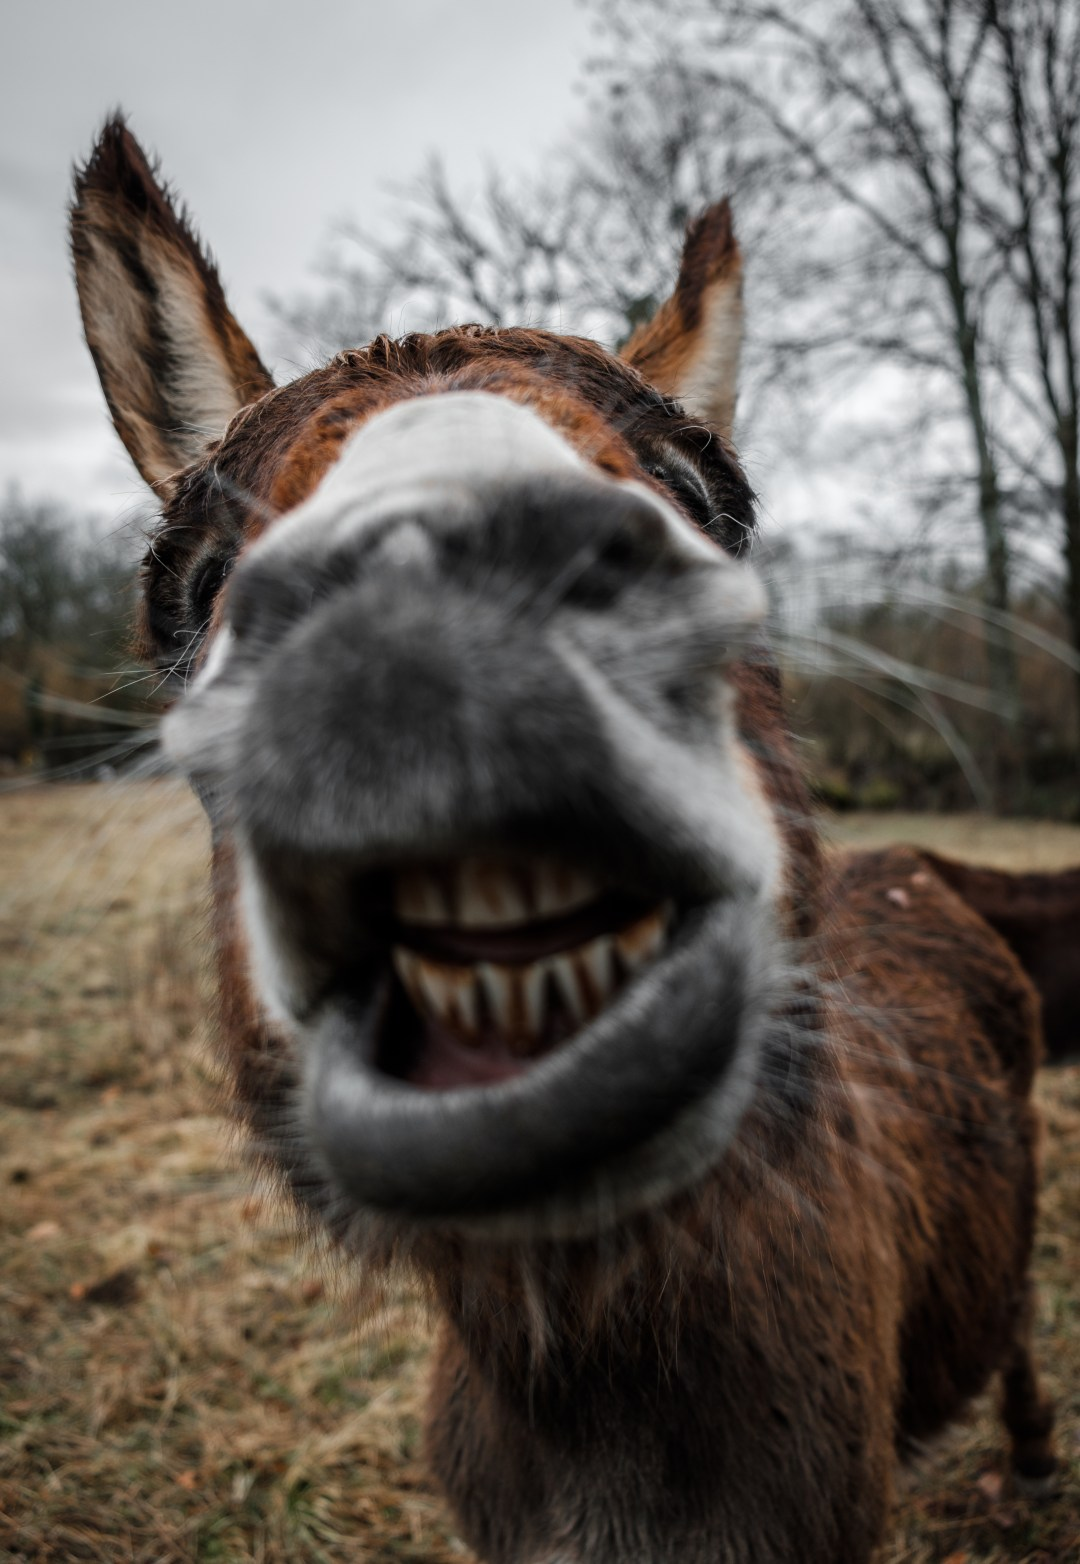 Laughing Girl Wallpapers Free Download 100 Donkey Pictures Download Free Images On Unsplash